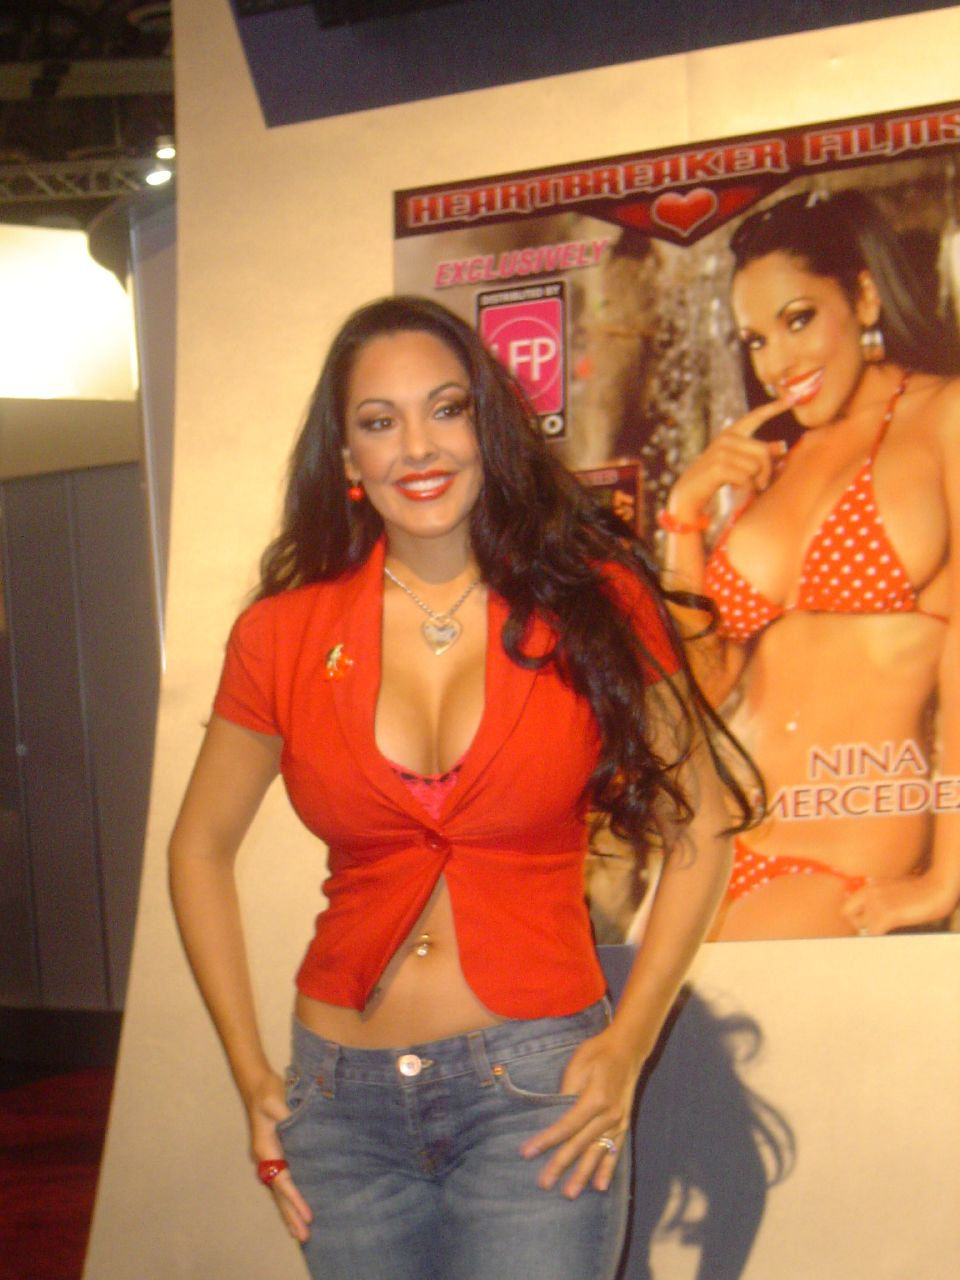 Description Nina Mercedez